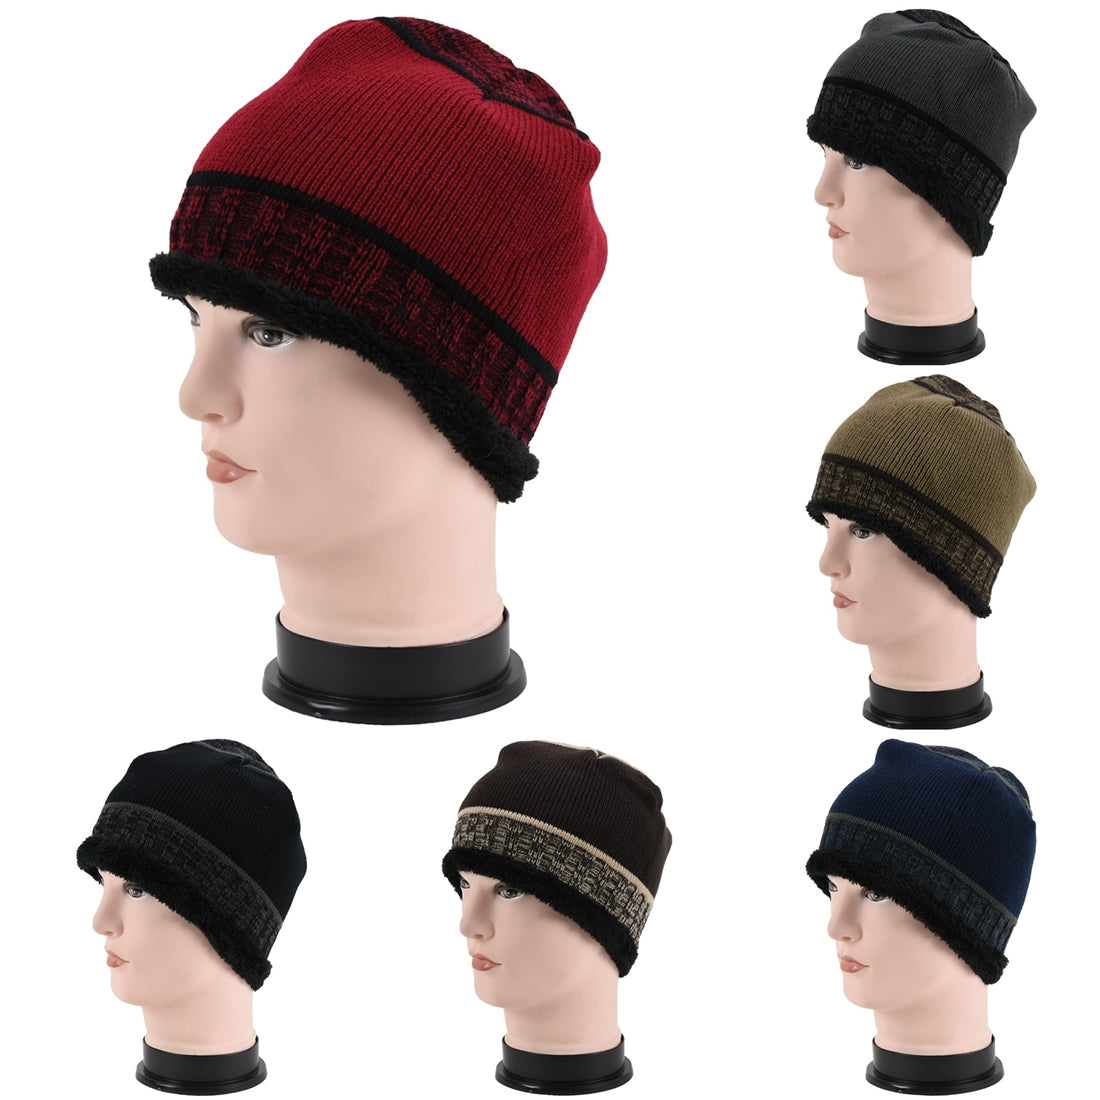 Wholesale Winter Knit Beanie Hats NYC Wholesaler – OPT FASHION WHOLESALE 0a5ca13275e